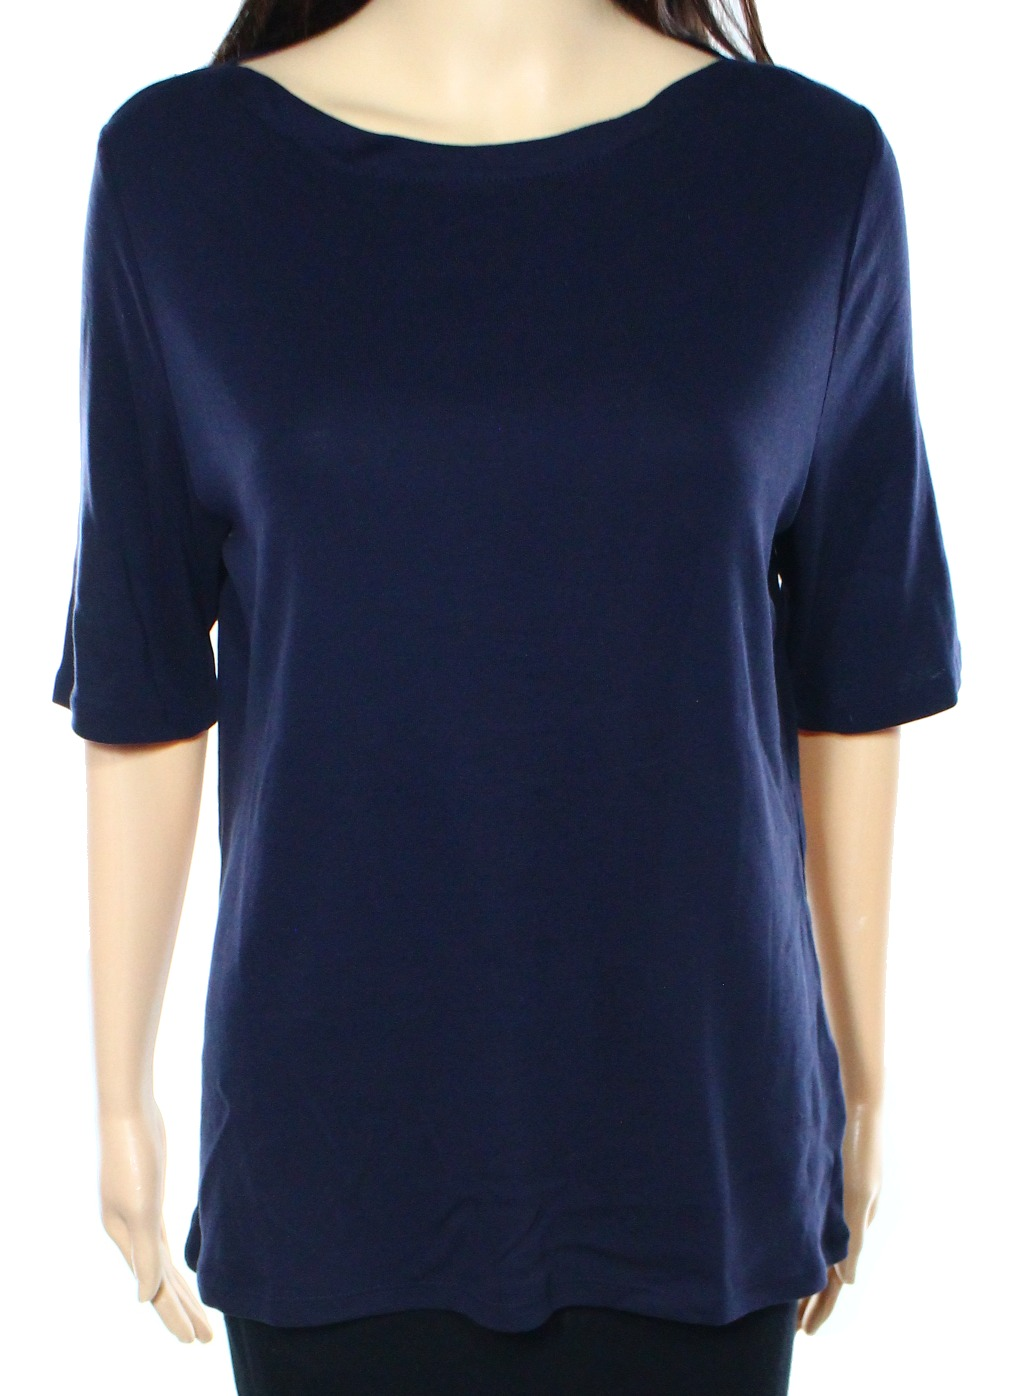 Charter club new blue womens size large l boat neck tee for Pima cotton tee shirts